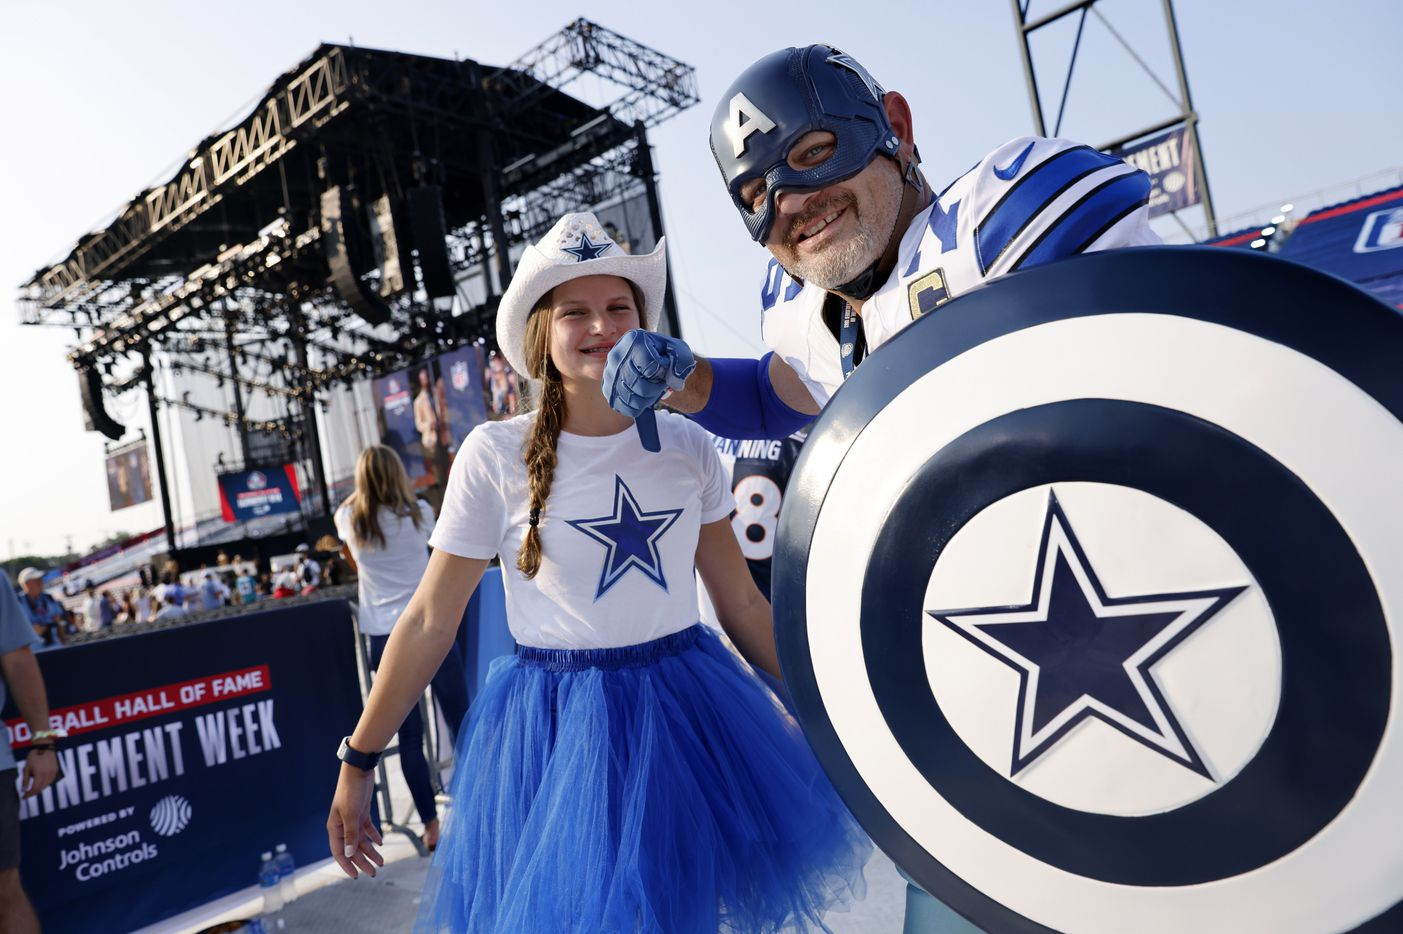 Dallas Cowboys fans Eric Welborn of Elkin, North Carolina and his 15 yr-old daughter Sophie pose for a photo in the Caption America's Team outfit during the Pro Football Hall of Fame Class of 2021 enshrinement ceremony at Tom Benson Hall of Fame Stadium in Canton, Ohio, Sunday, August 8, 2021. (Tom Fox/The Dallas Morning News)